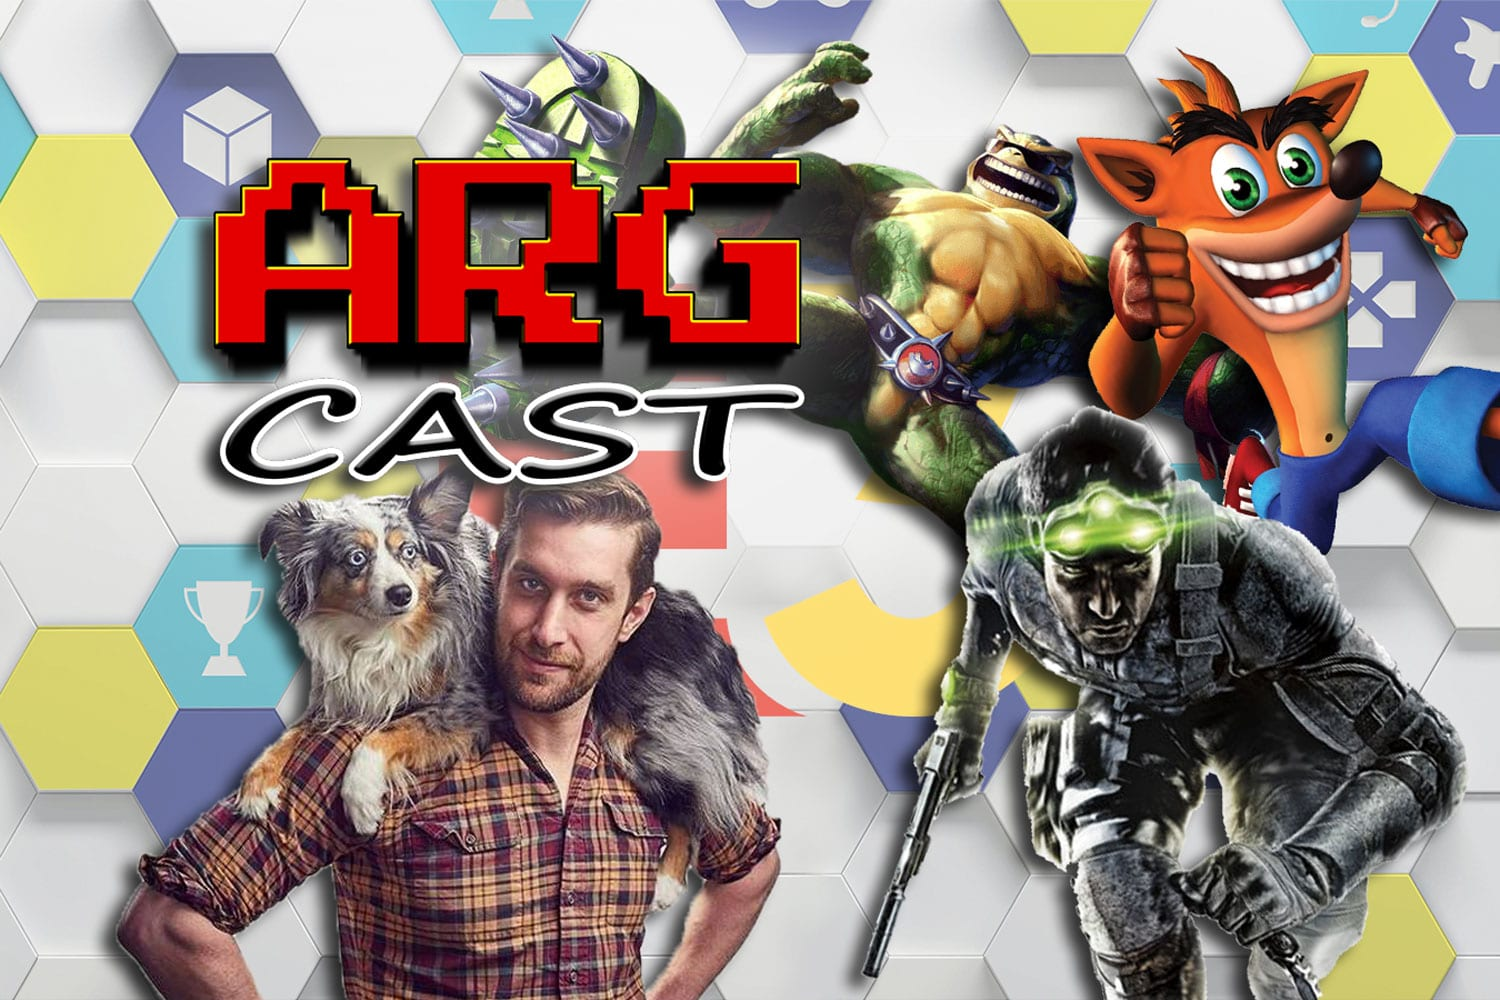 ARGcast #114: E3 2018 Predictions with Will Powers